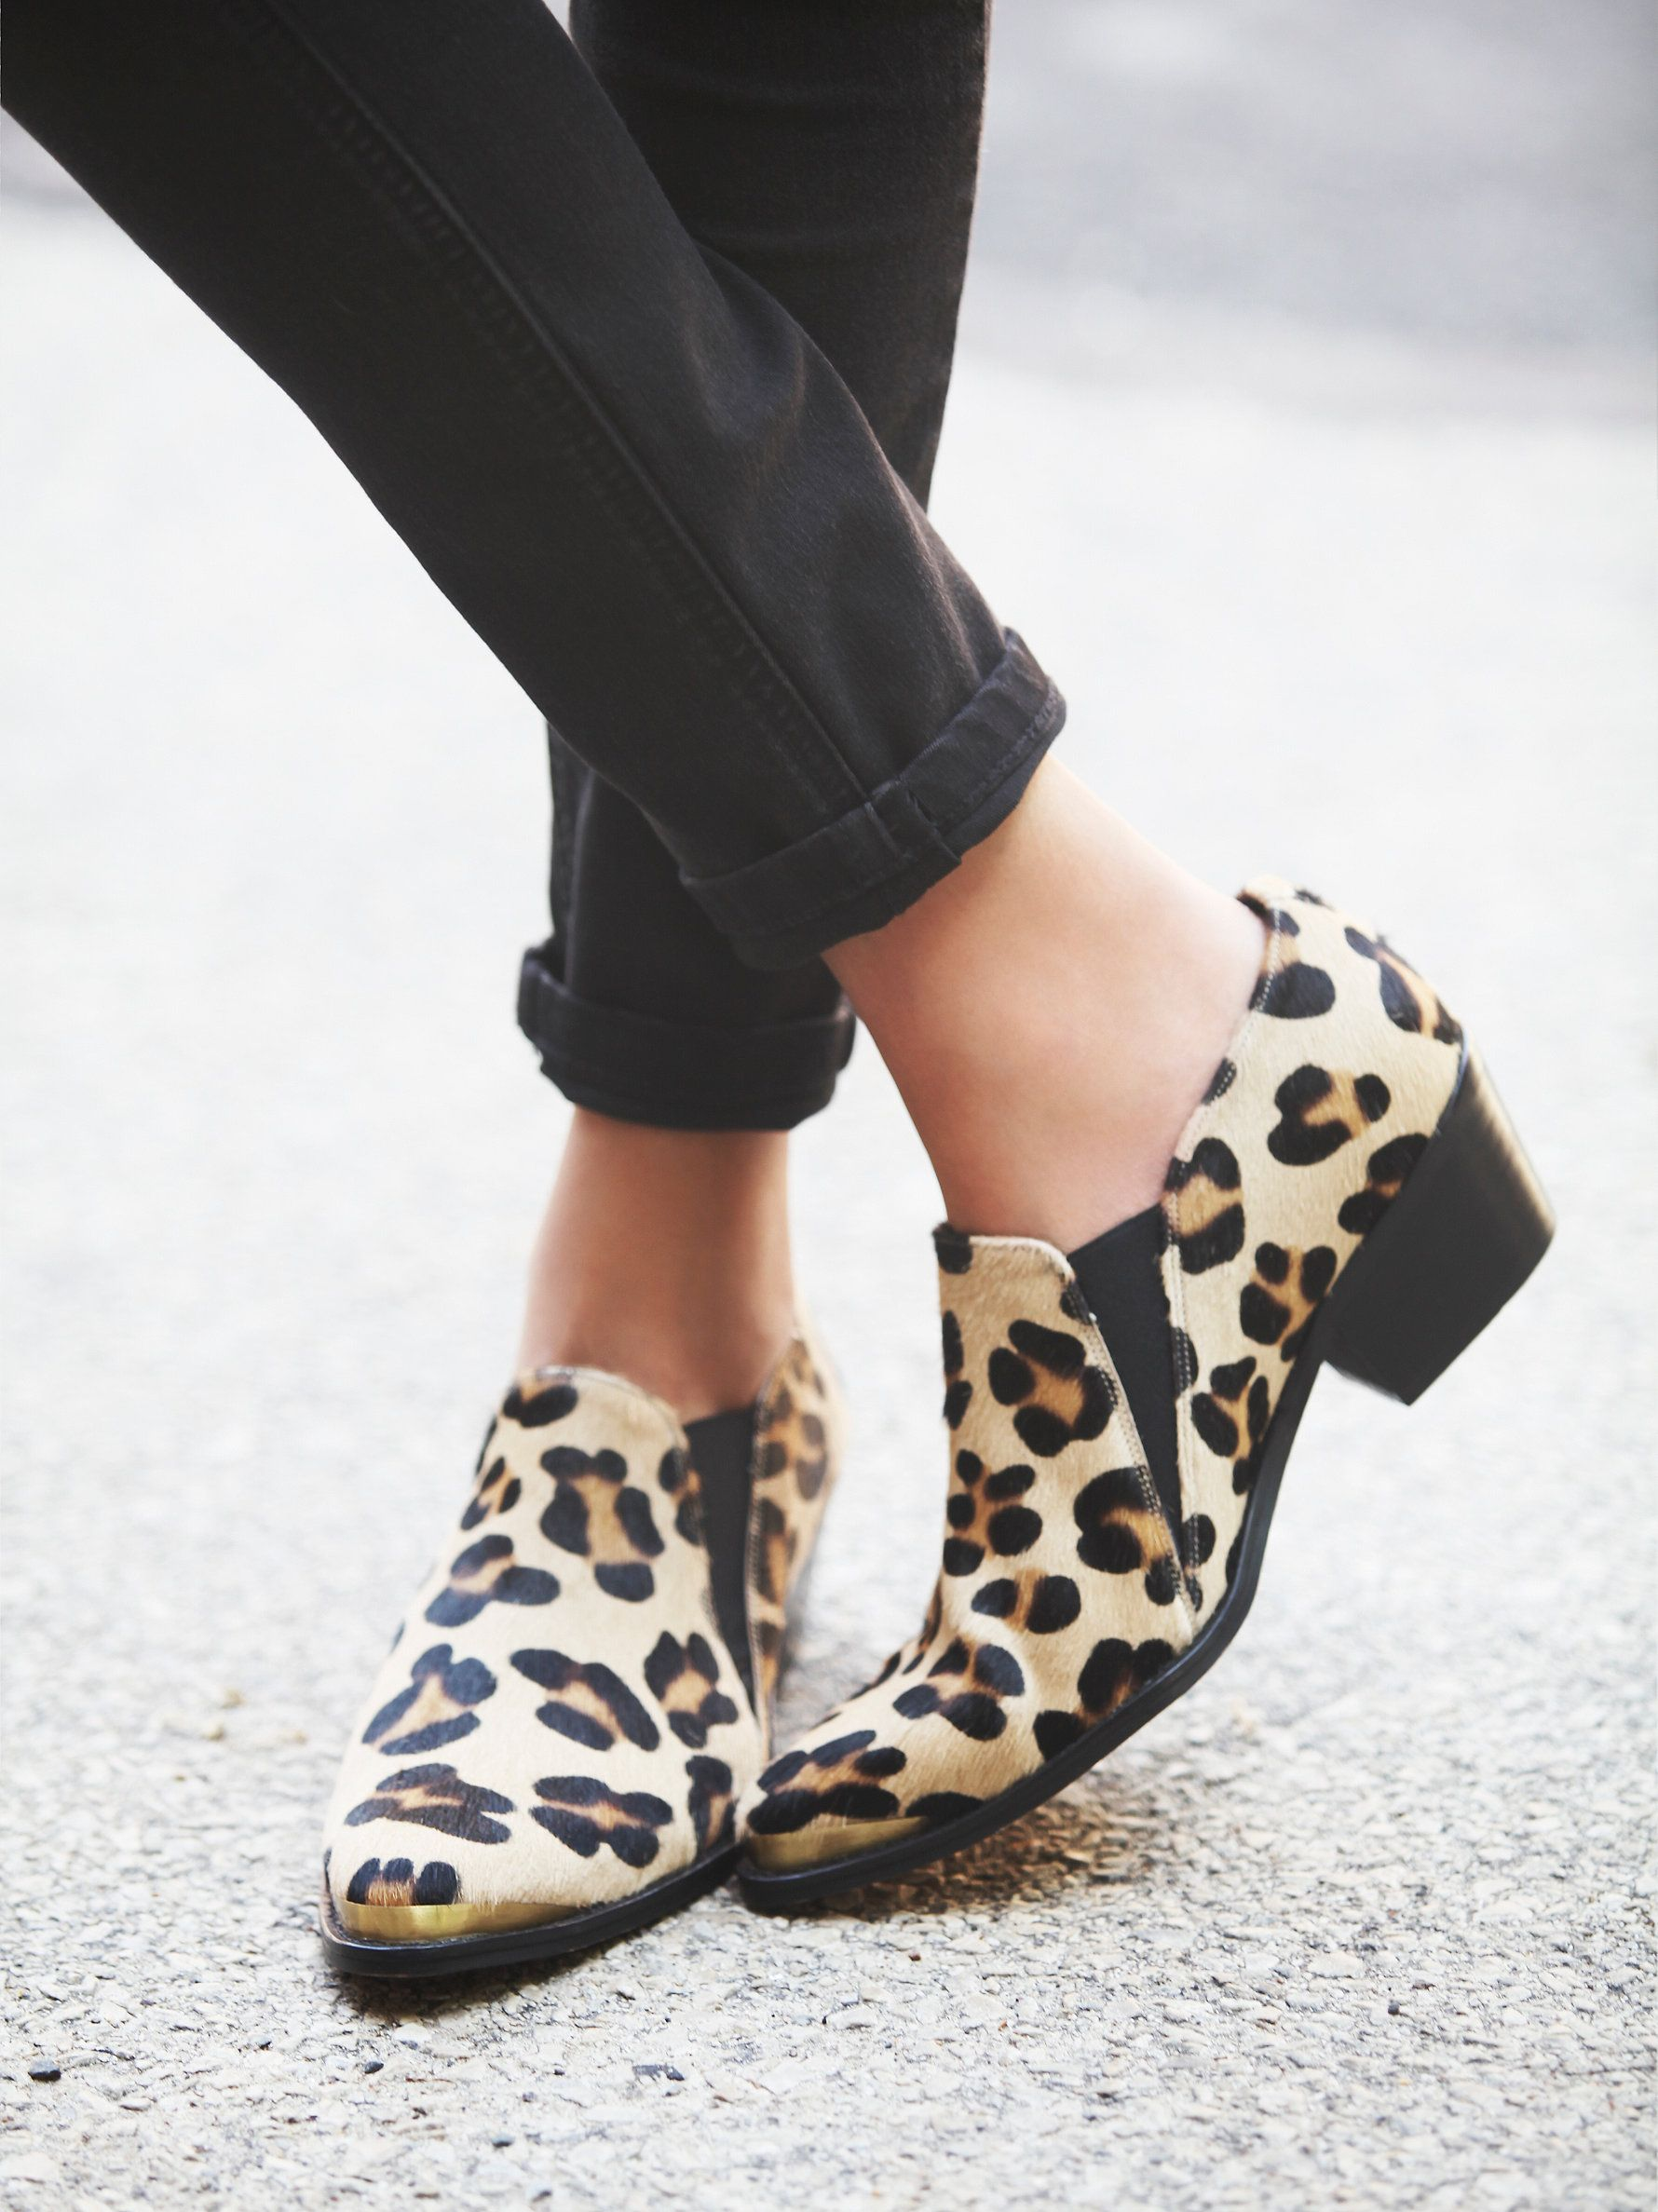 Women's Fashion Leopard Print Black Pointed-toe High-heel Ankle-high Chelsea Boots Dress Boots